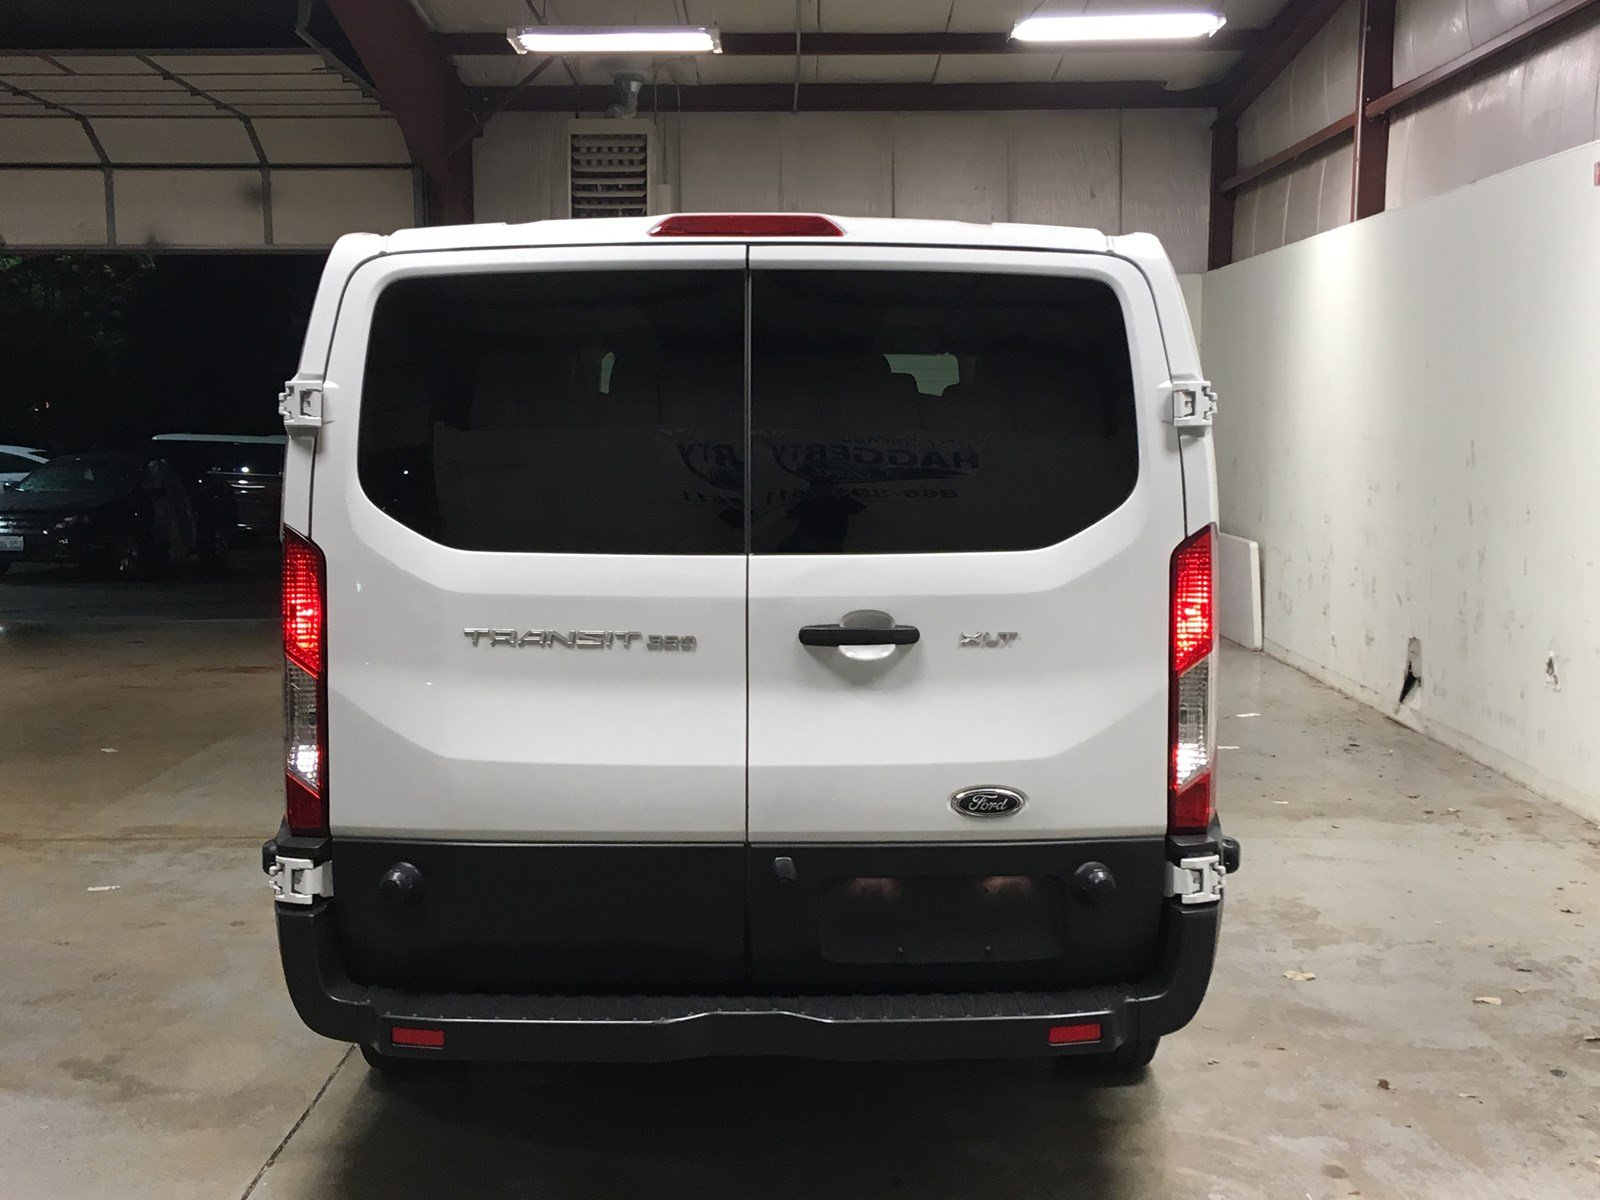 Certified Pre-Owned 2017 Ford Transit Wagon XLT 15 Passenger